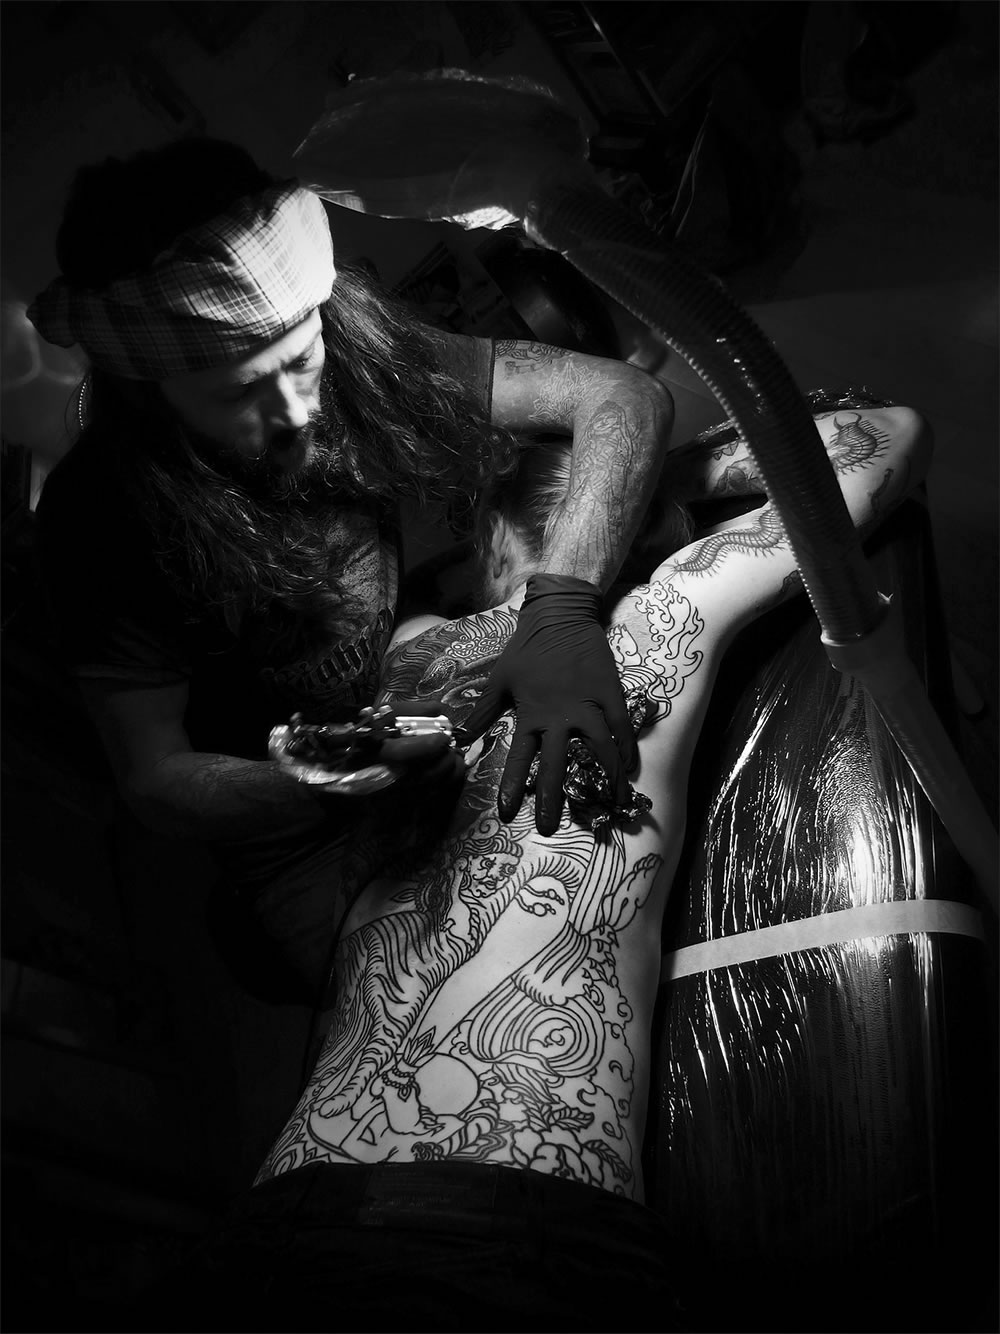 Guy Le Tatooer working on a back piece